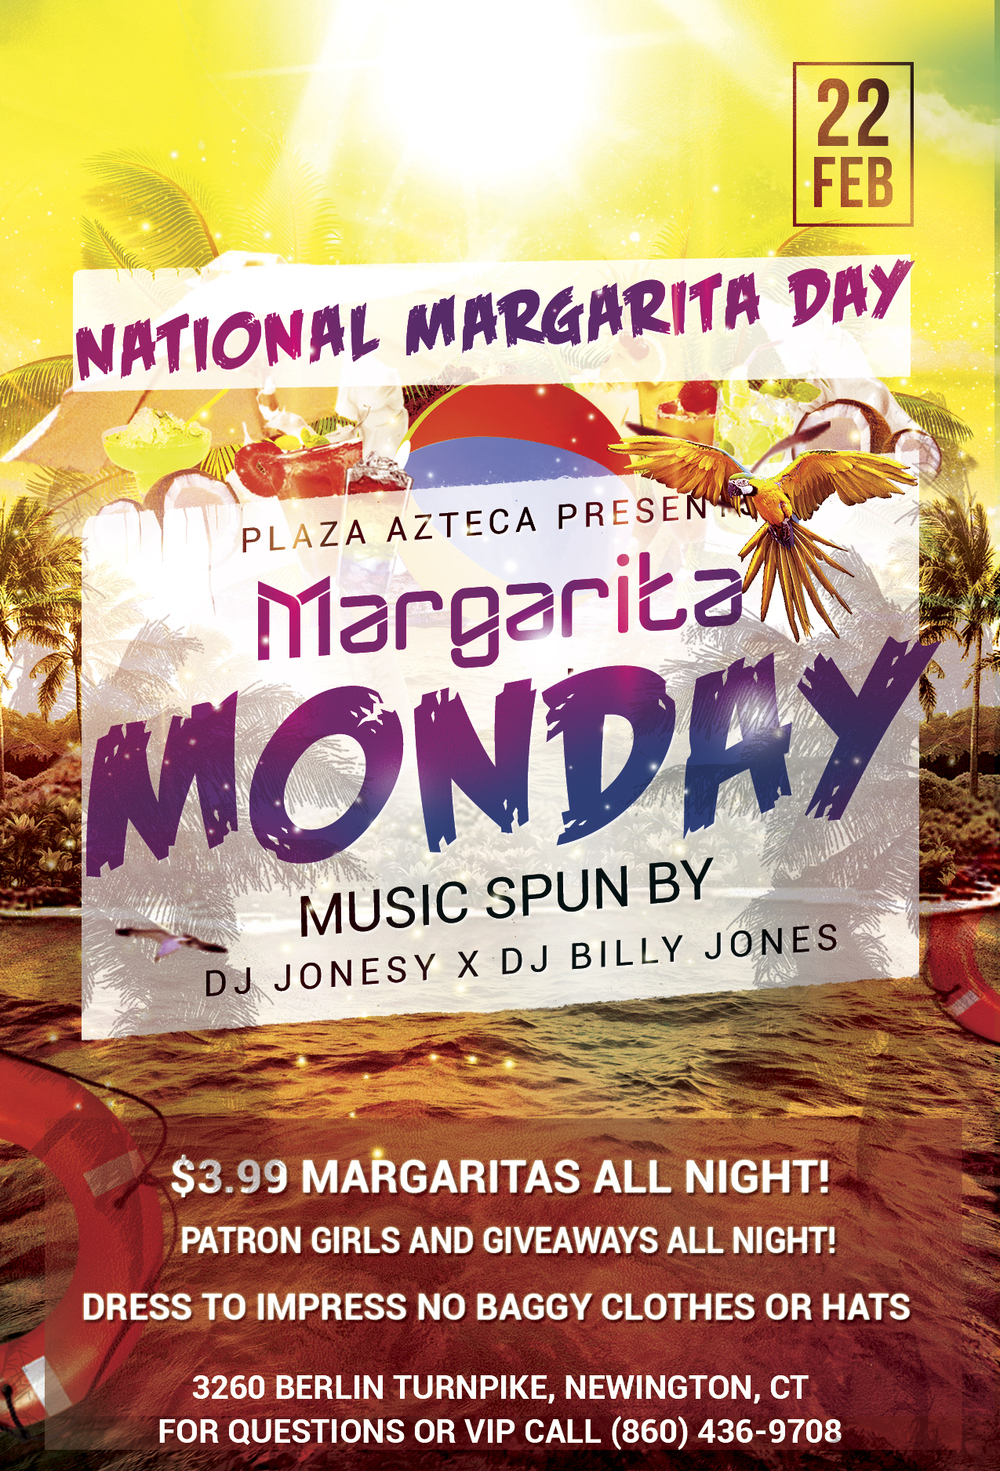 Monday, Feb 22nd join us at Plaza Azteca in Newington, CT for Margarita Monday with music by JONESY & Billy Jones.  Music starts at 9 pm.  $4 Margaritas all night long!